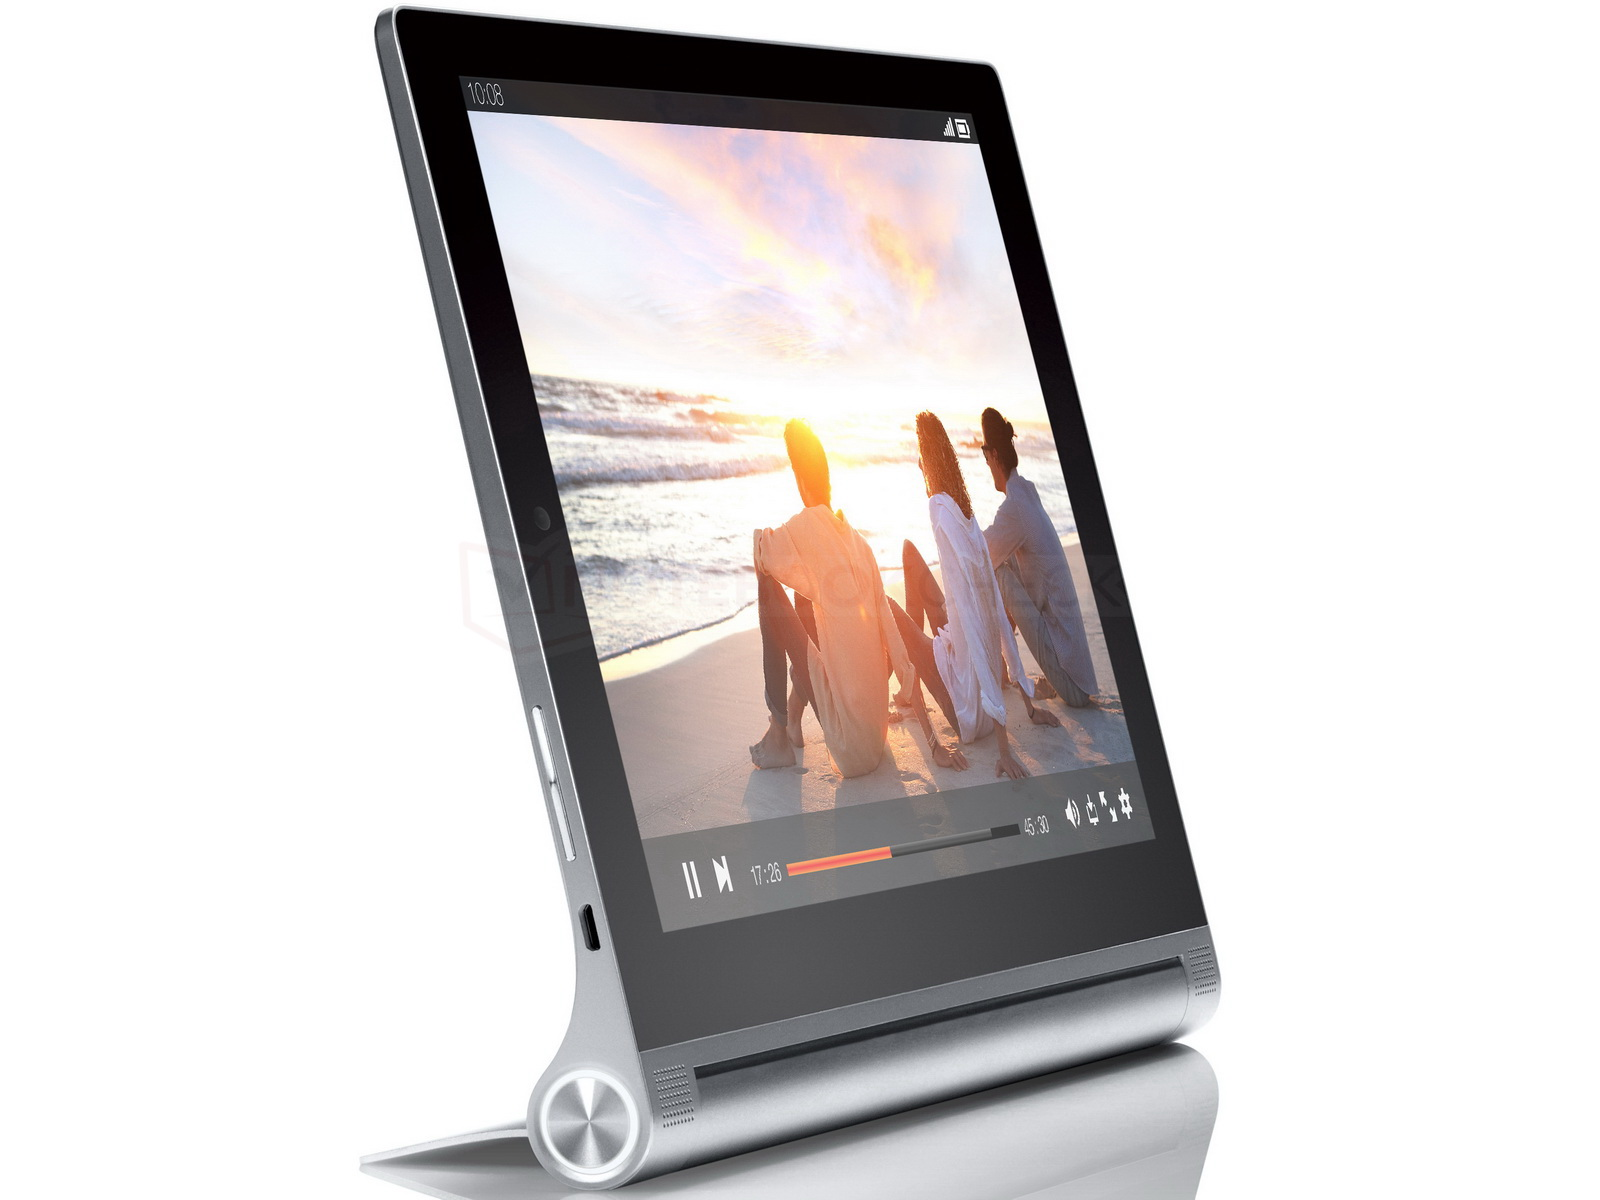 lenovo yoga 3 tablet